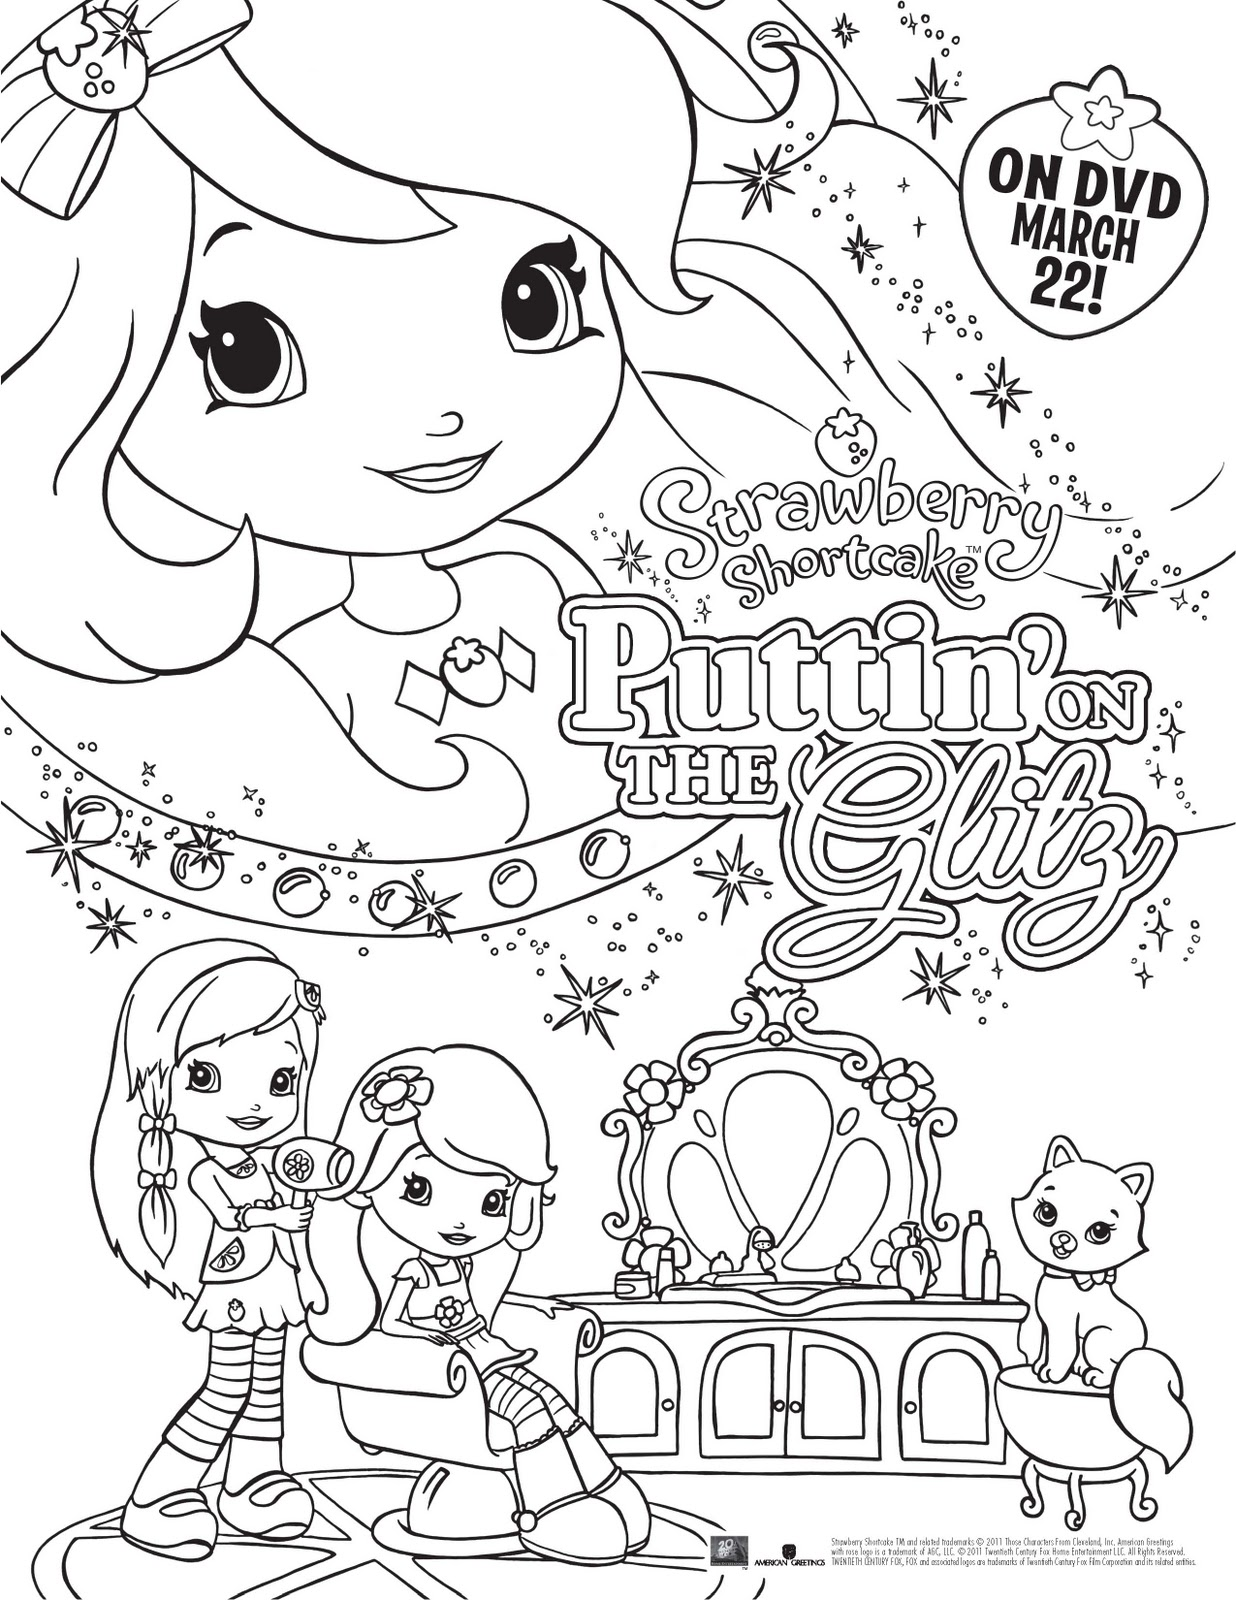 Colouring pages narnia - Co Colouring Pages Narnia Now